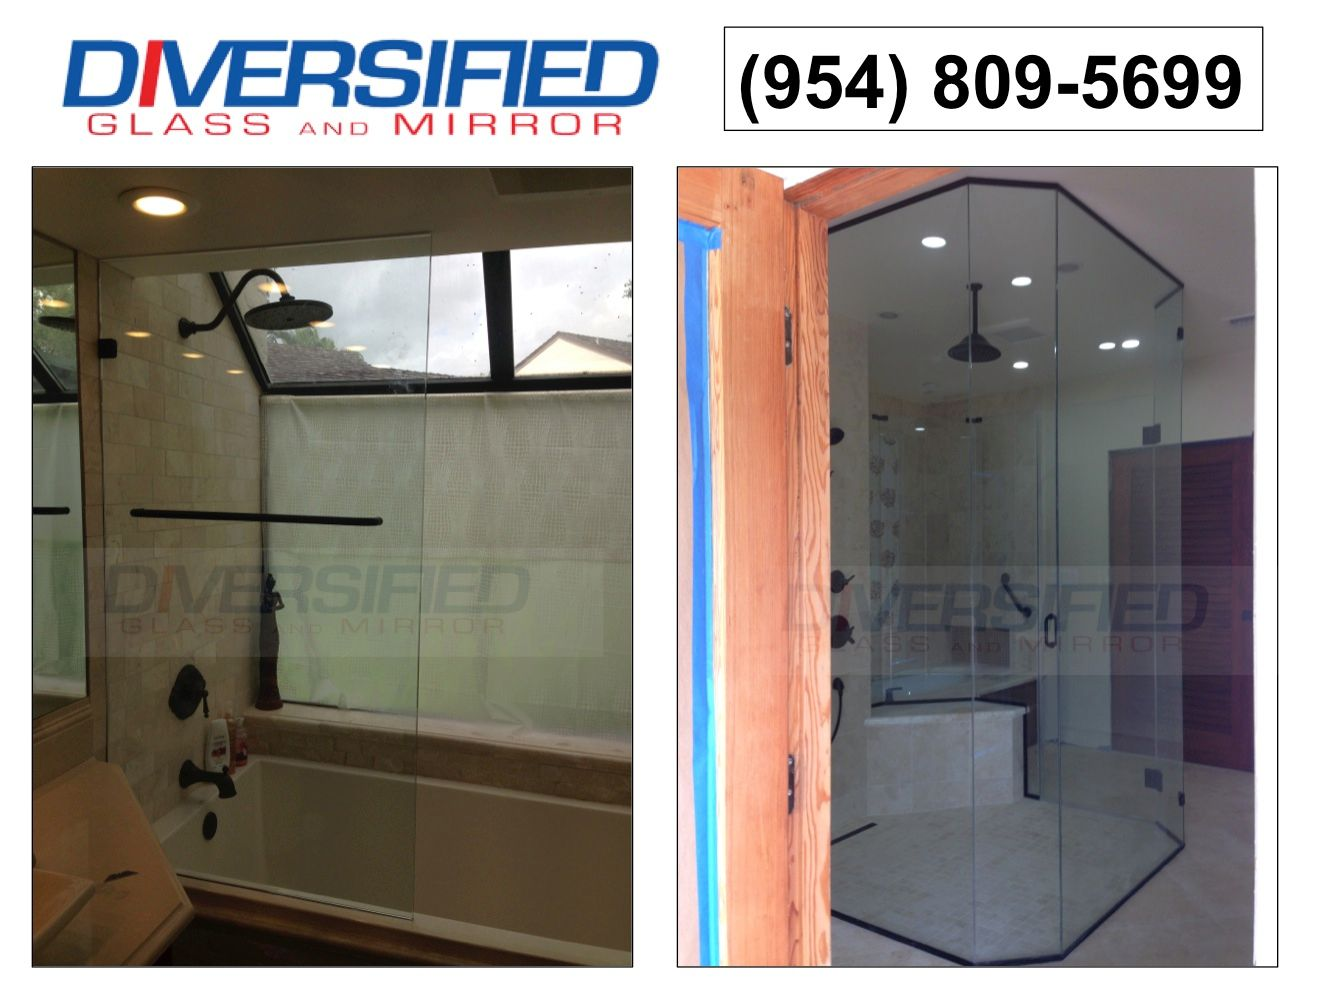 Window Glass Repair In Pompano Beach FL Diversified Glass And Mirror - Bathroom shower door repair